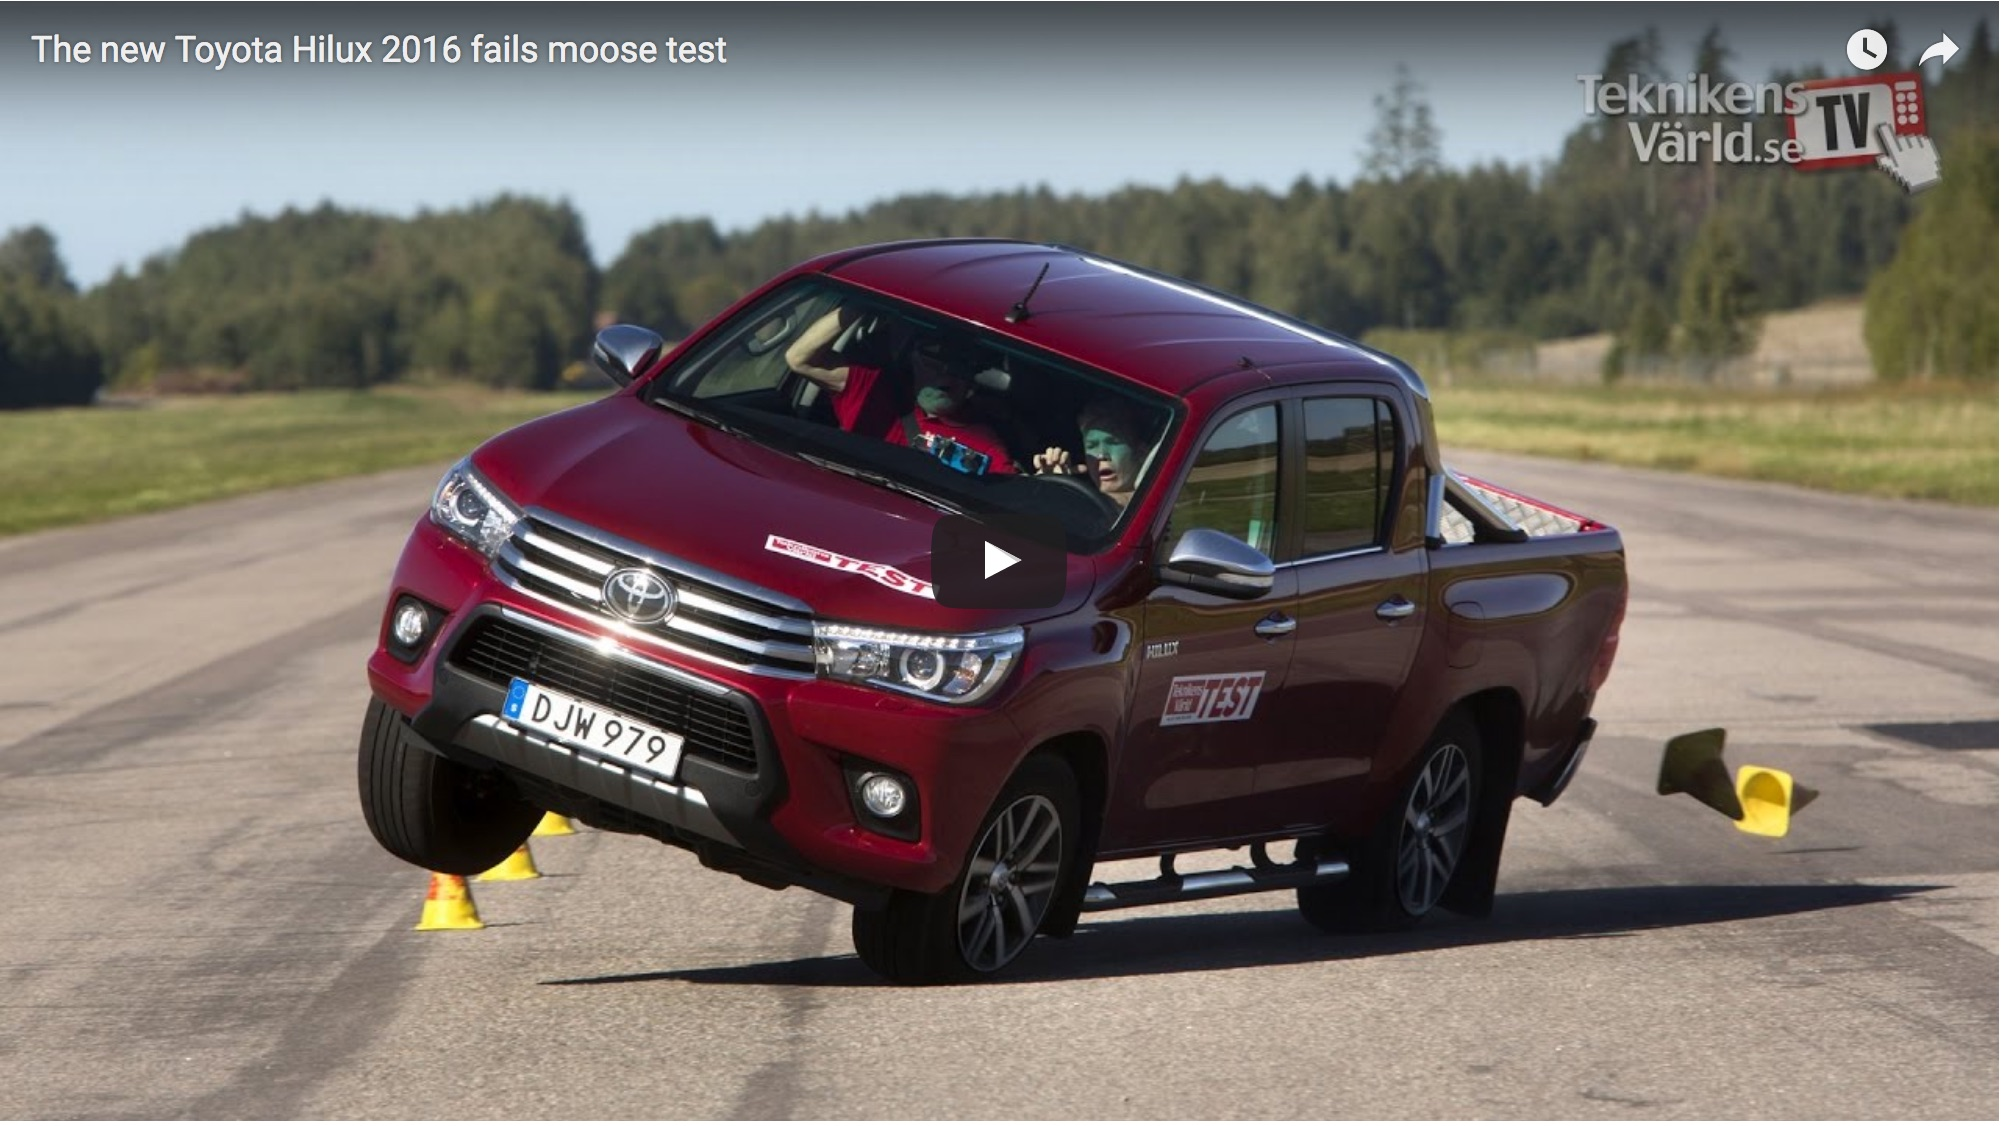 HiLux fails Moose Test, admirably. (VIDEO)